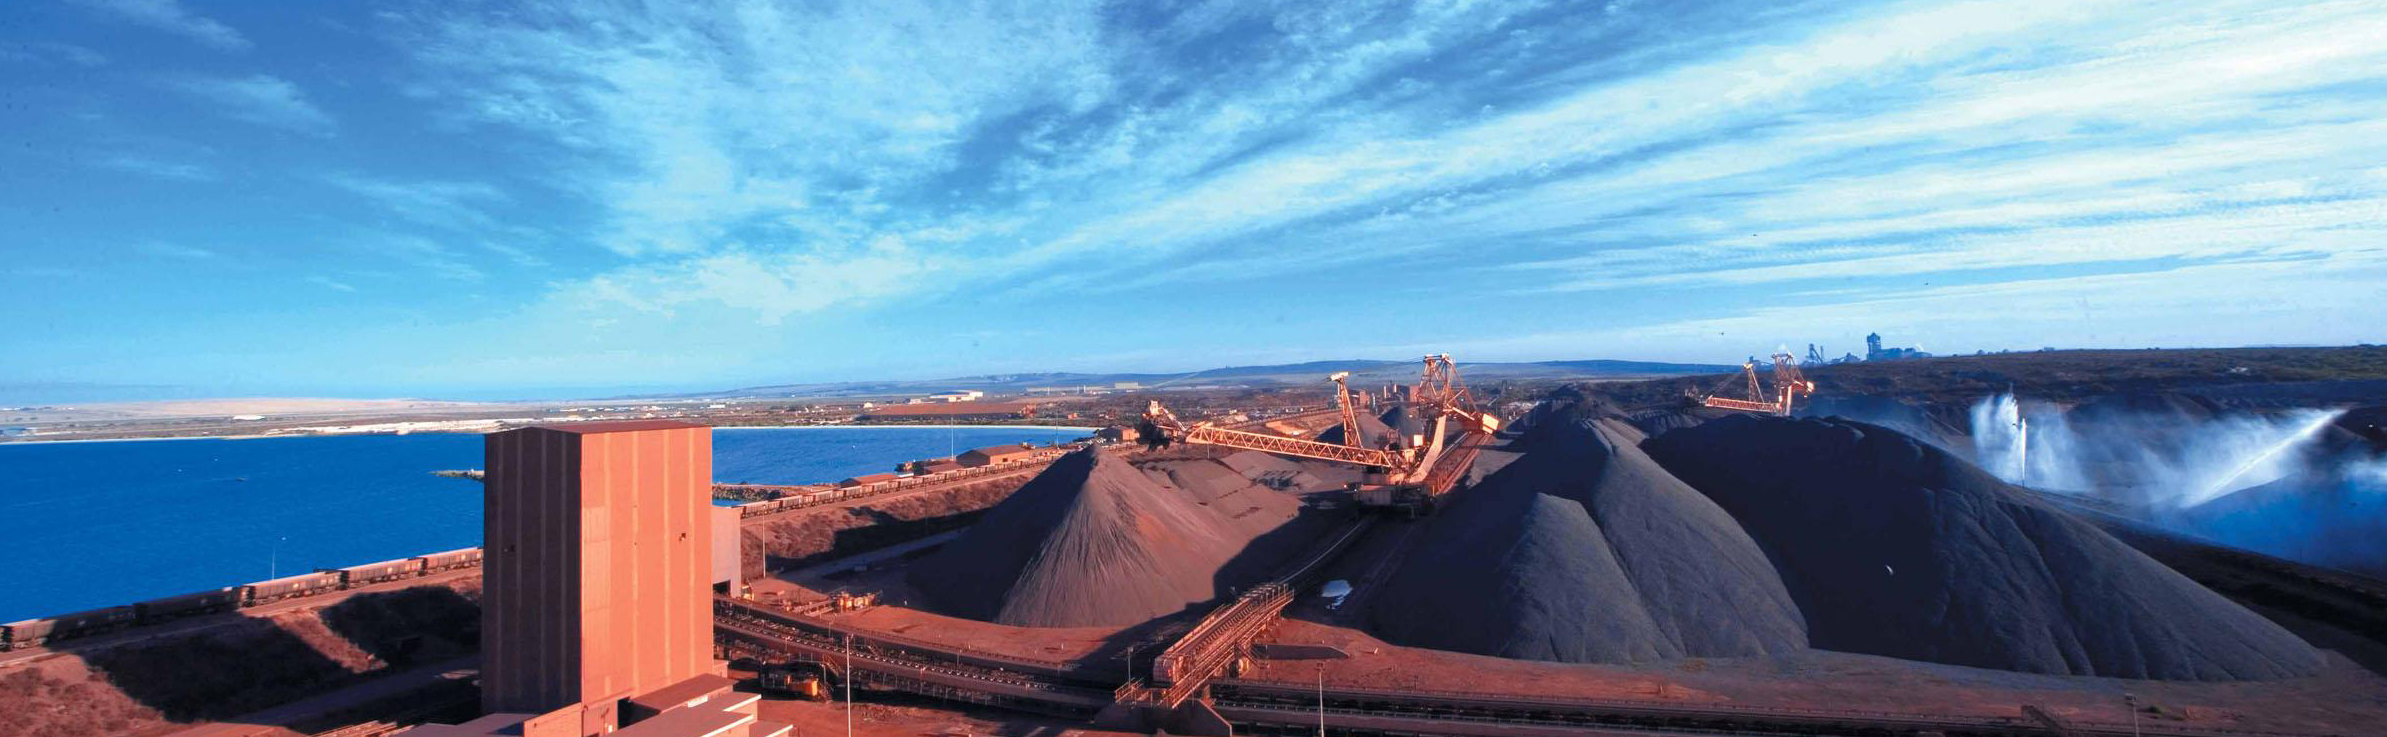 Iron ore resources, export from South Africa